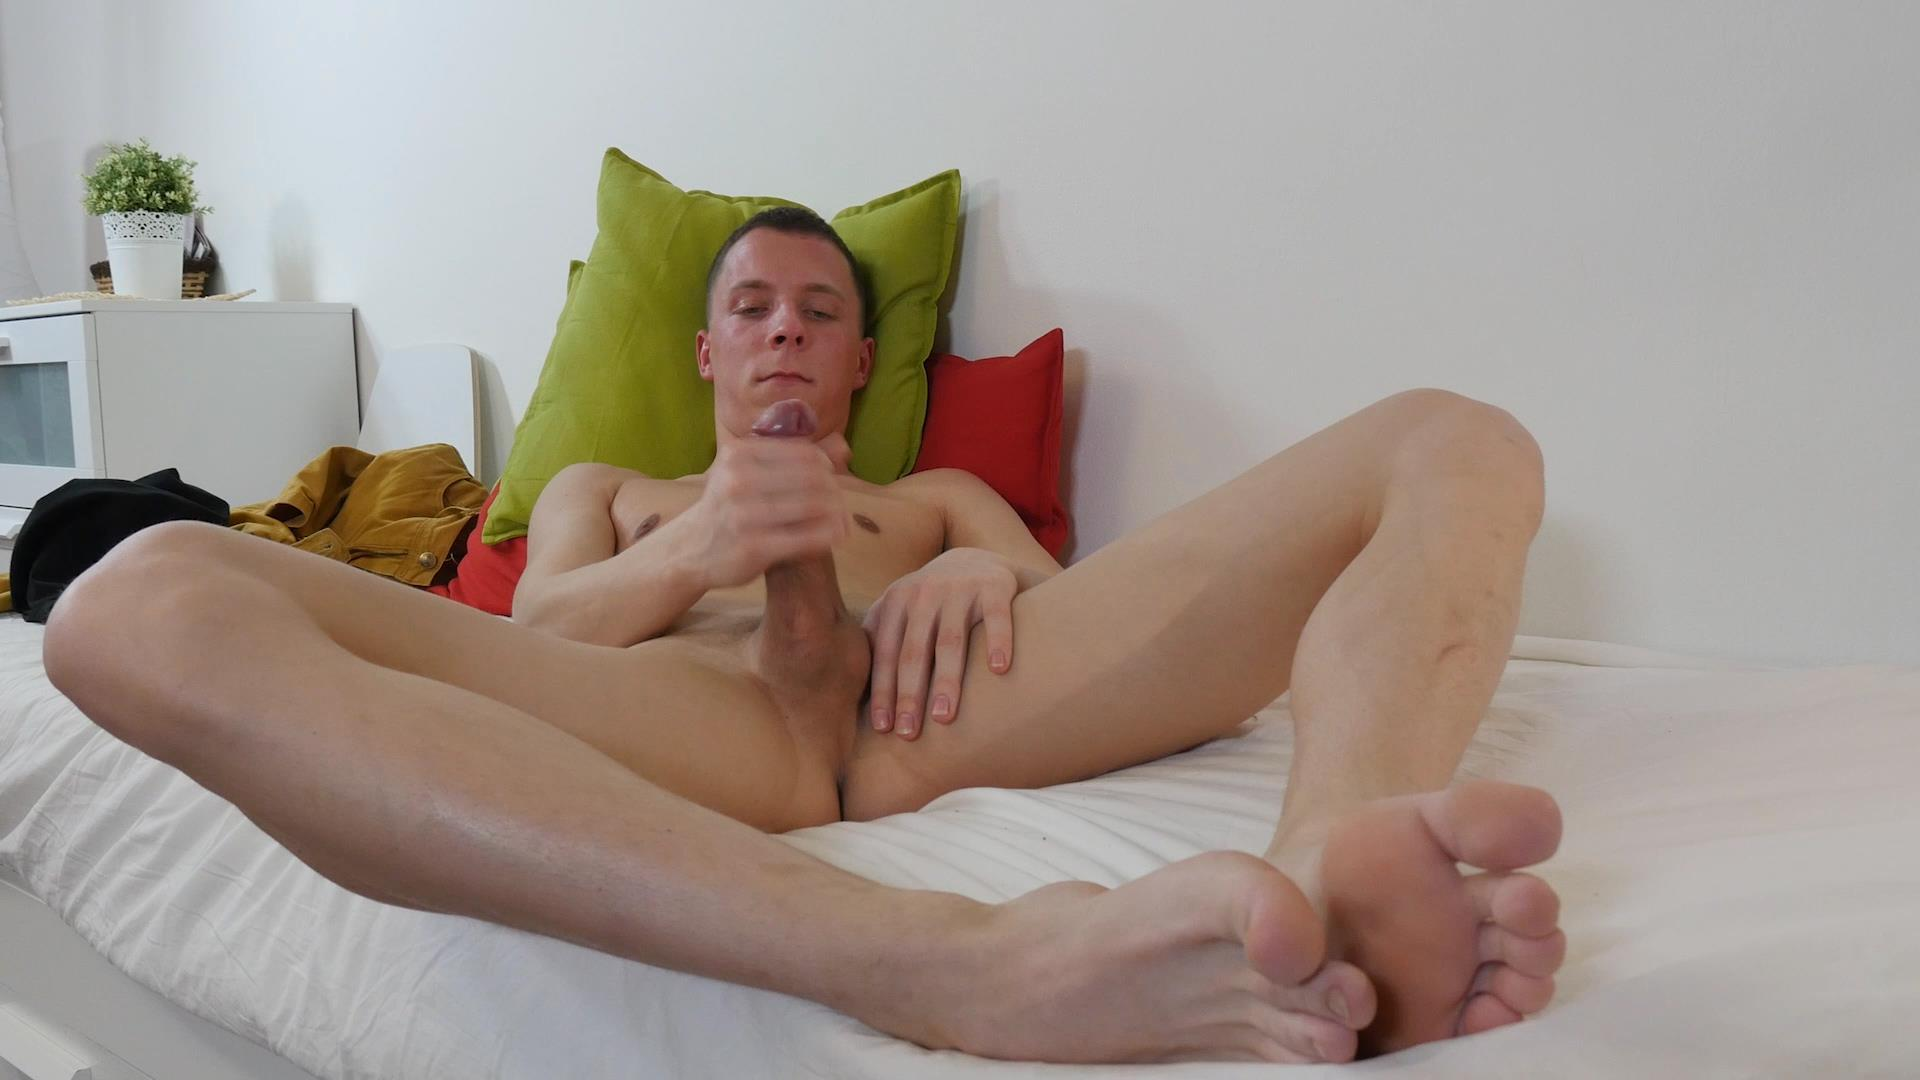 Twink Boys Party Andrew Kitt Twink With Big Uncut Cock Masturbation Amateur Gay Porn 14